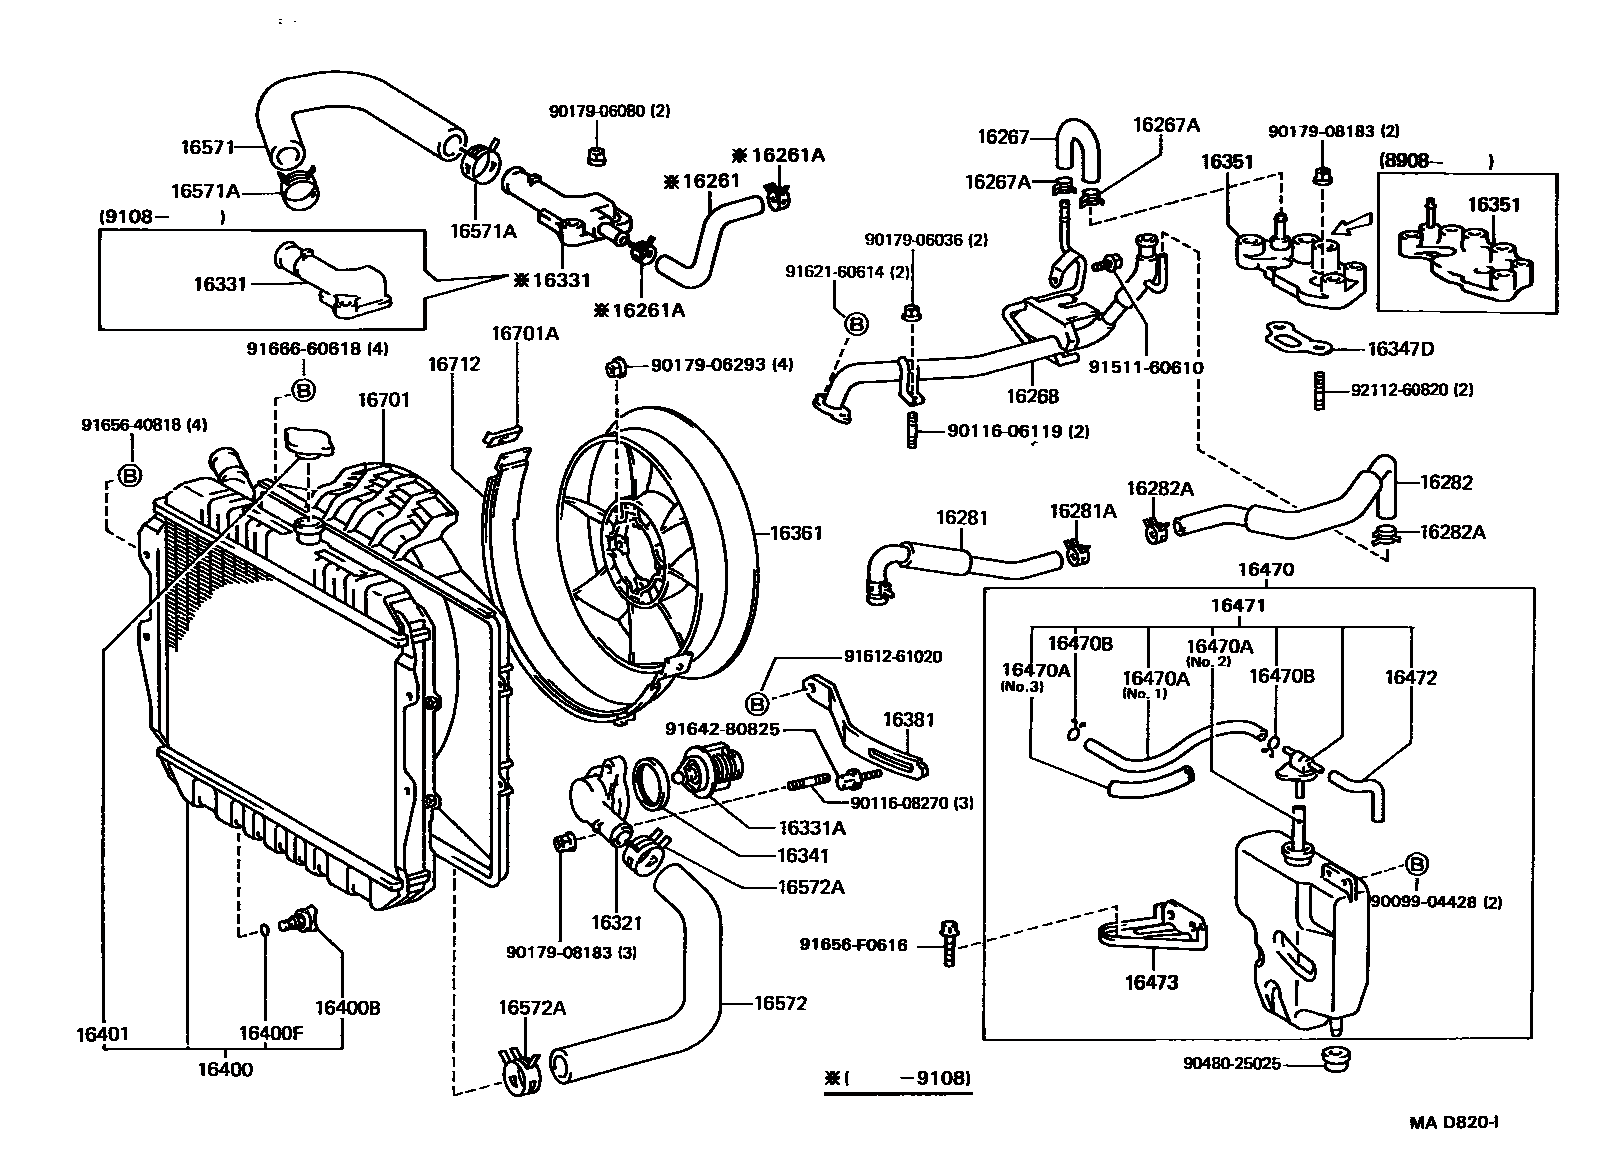 Vacuum hose diagram toyota 3vze (With images) | Diagram ...